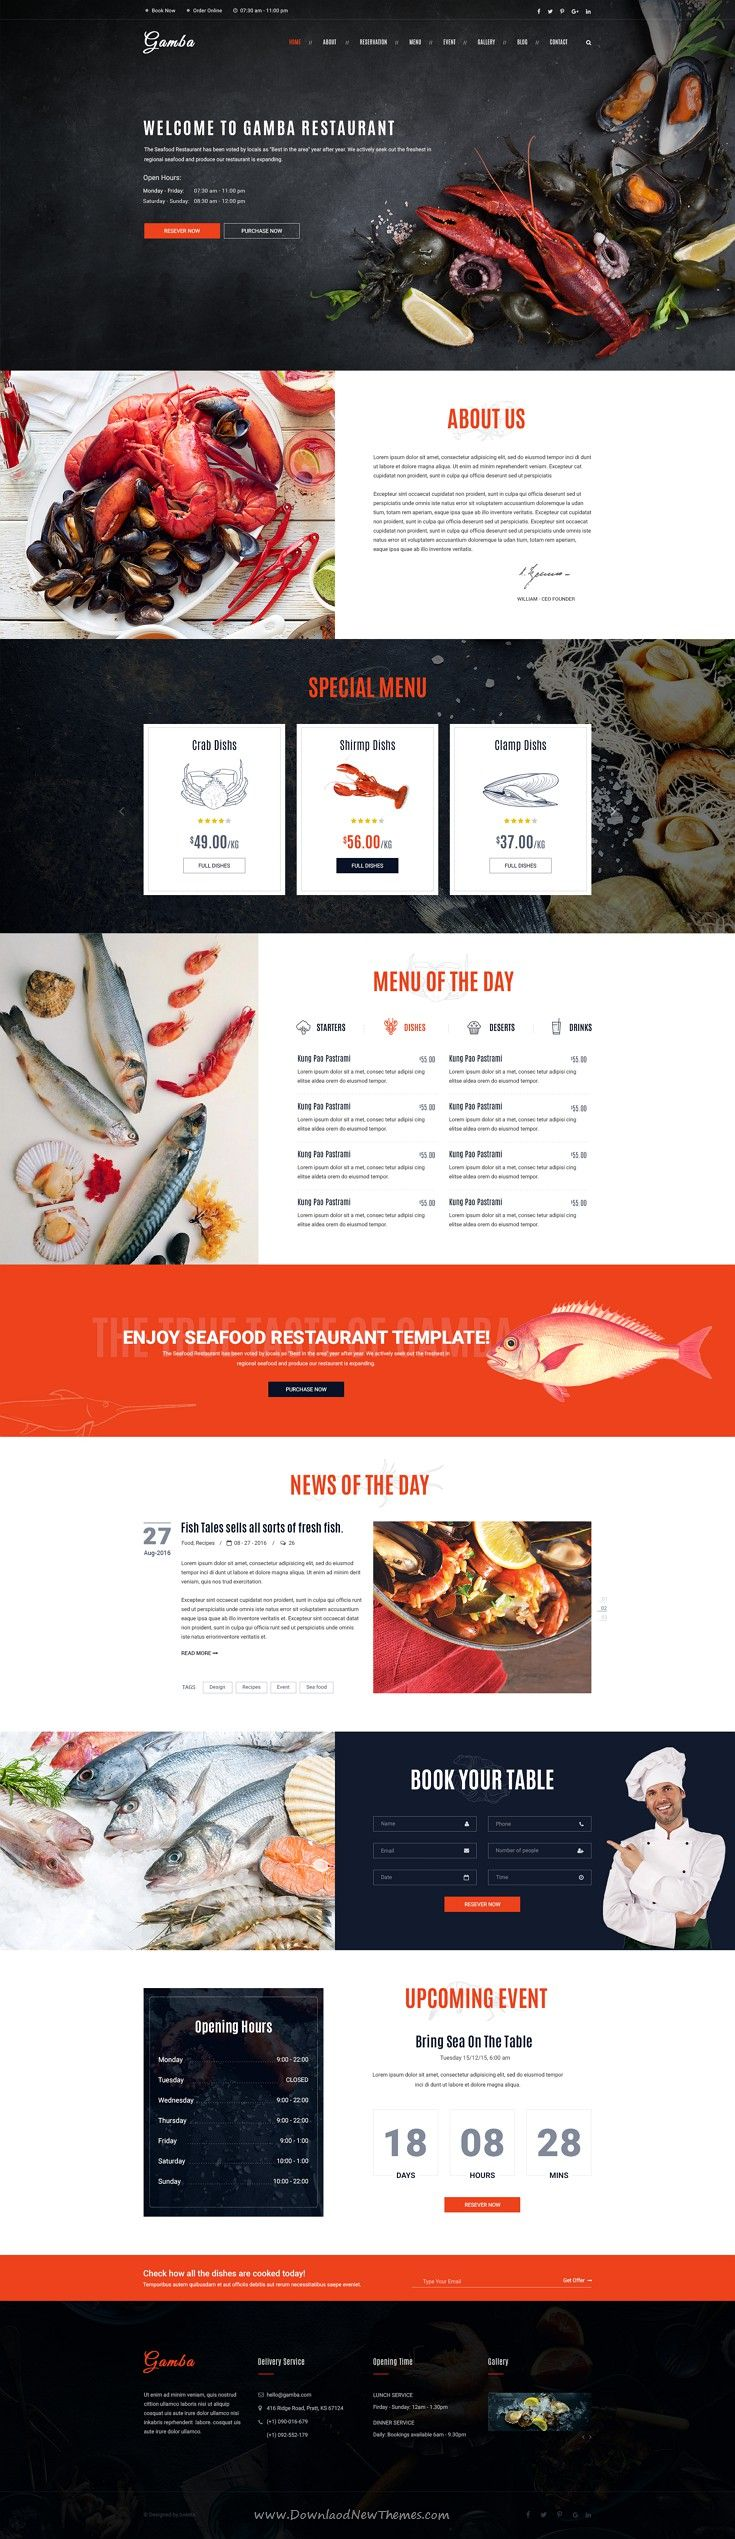 Gamba is a powerful, modern and creative #PSD template, designed for food, bakery, cafe, pub & #restaurant #websites.